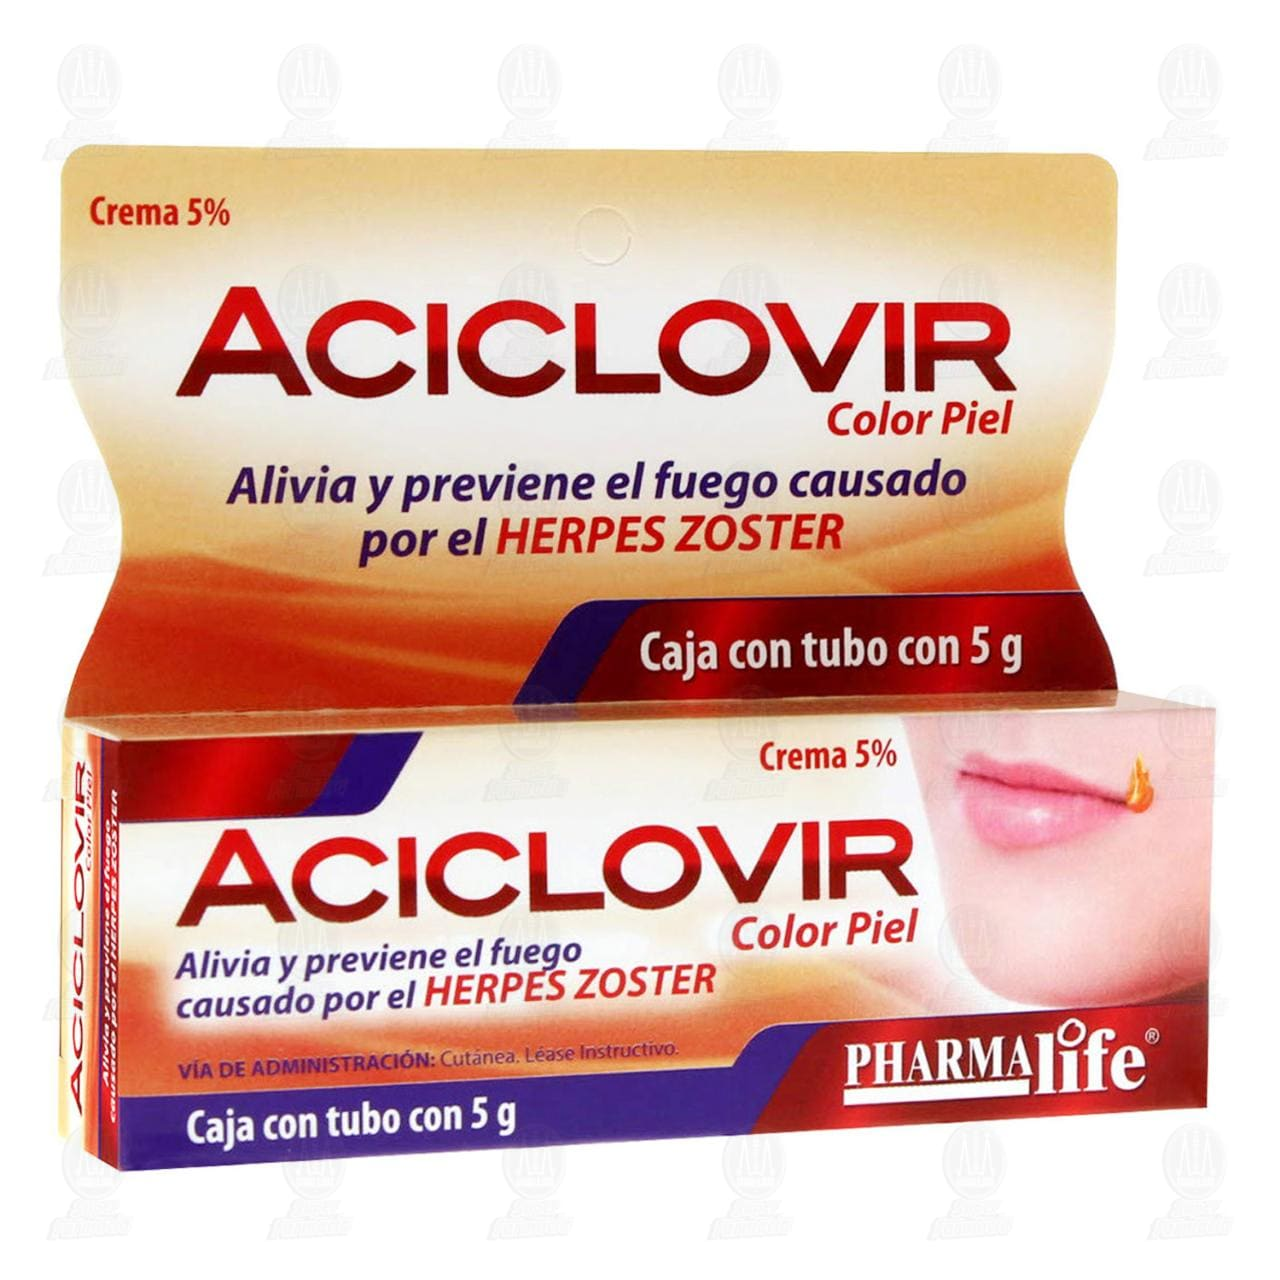 Aciclovir 5% Crema 5gr Color Piel Pharmalife